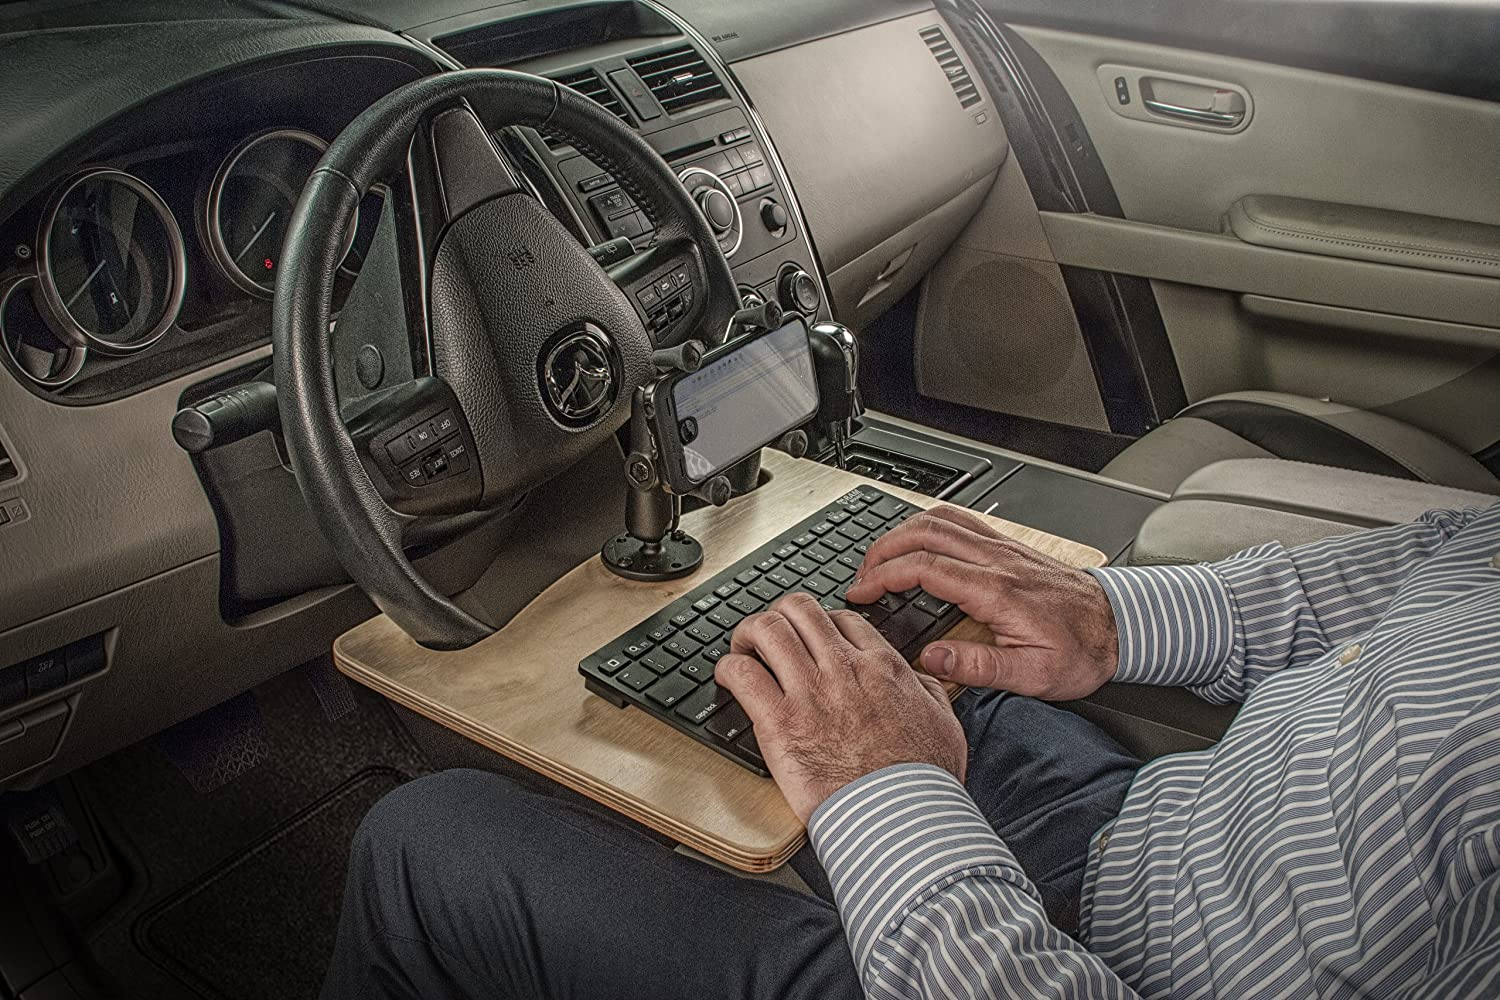 AutoExec WMEX-07 Wheelmate Extreme Vehicle Desk with Smartphone X-Grip Mount and Bluetooth Keyboard